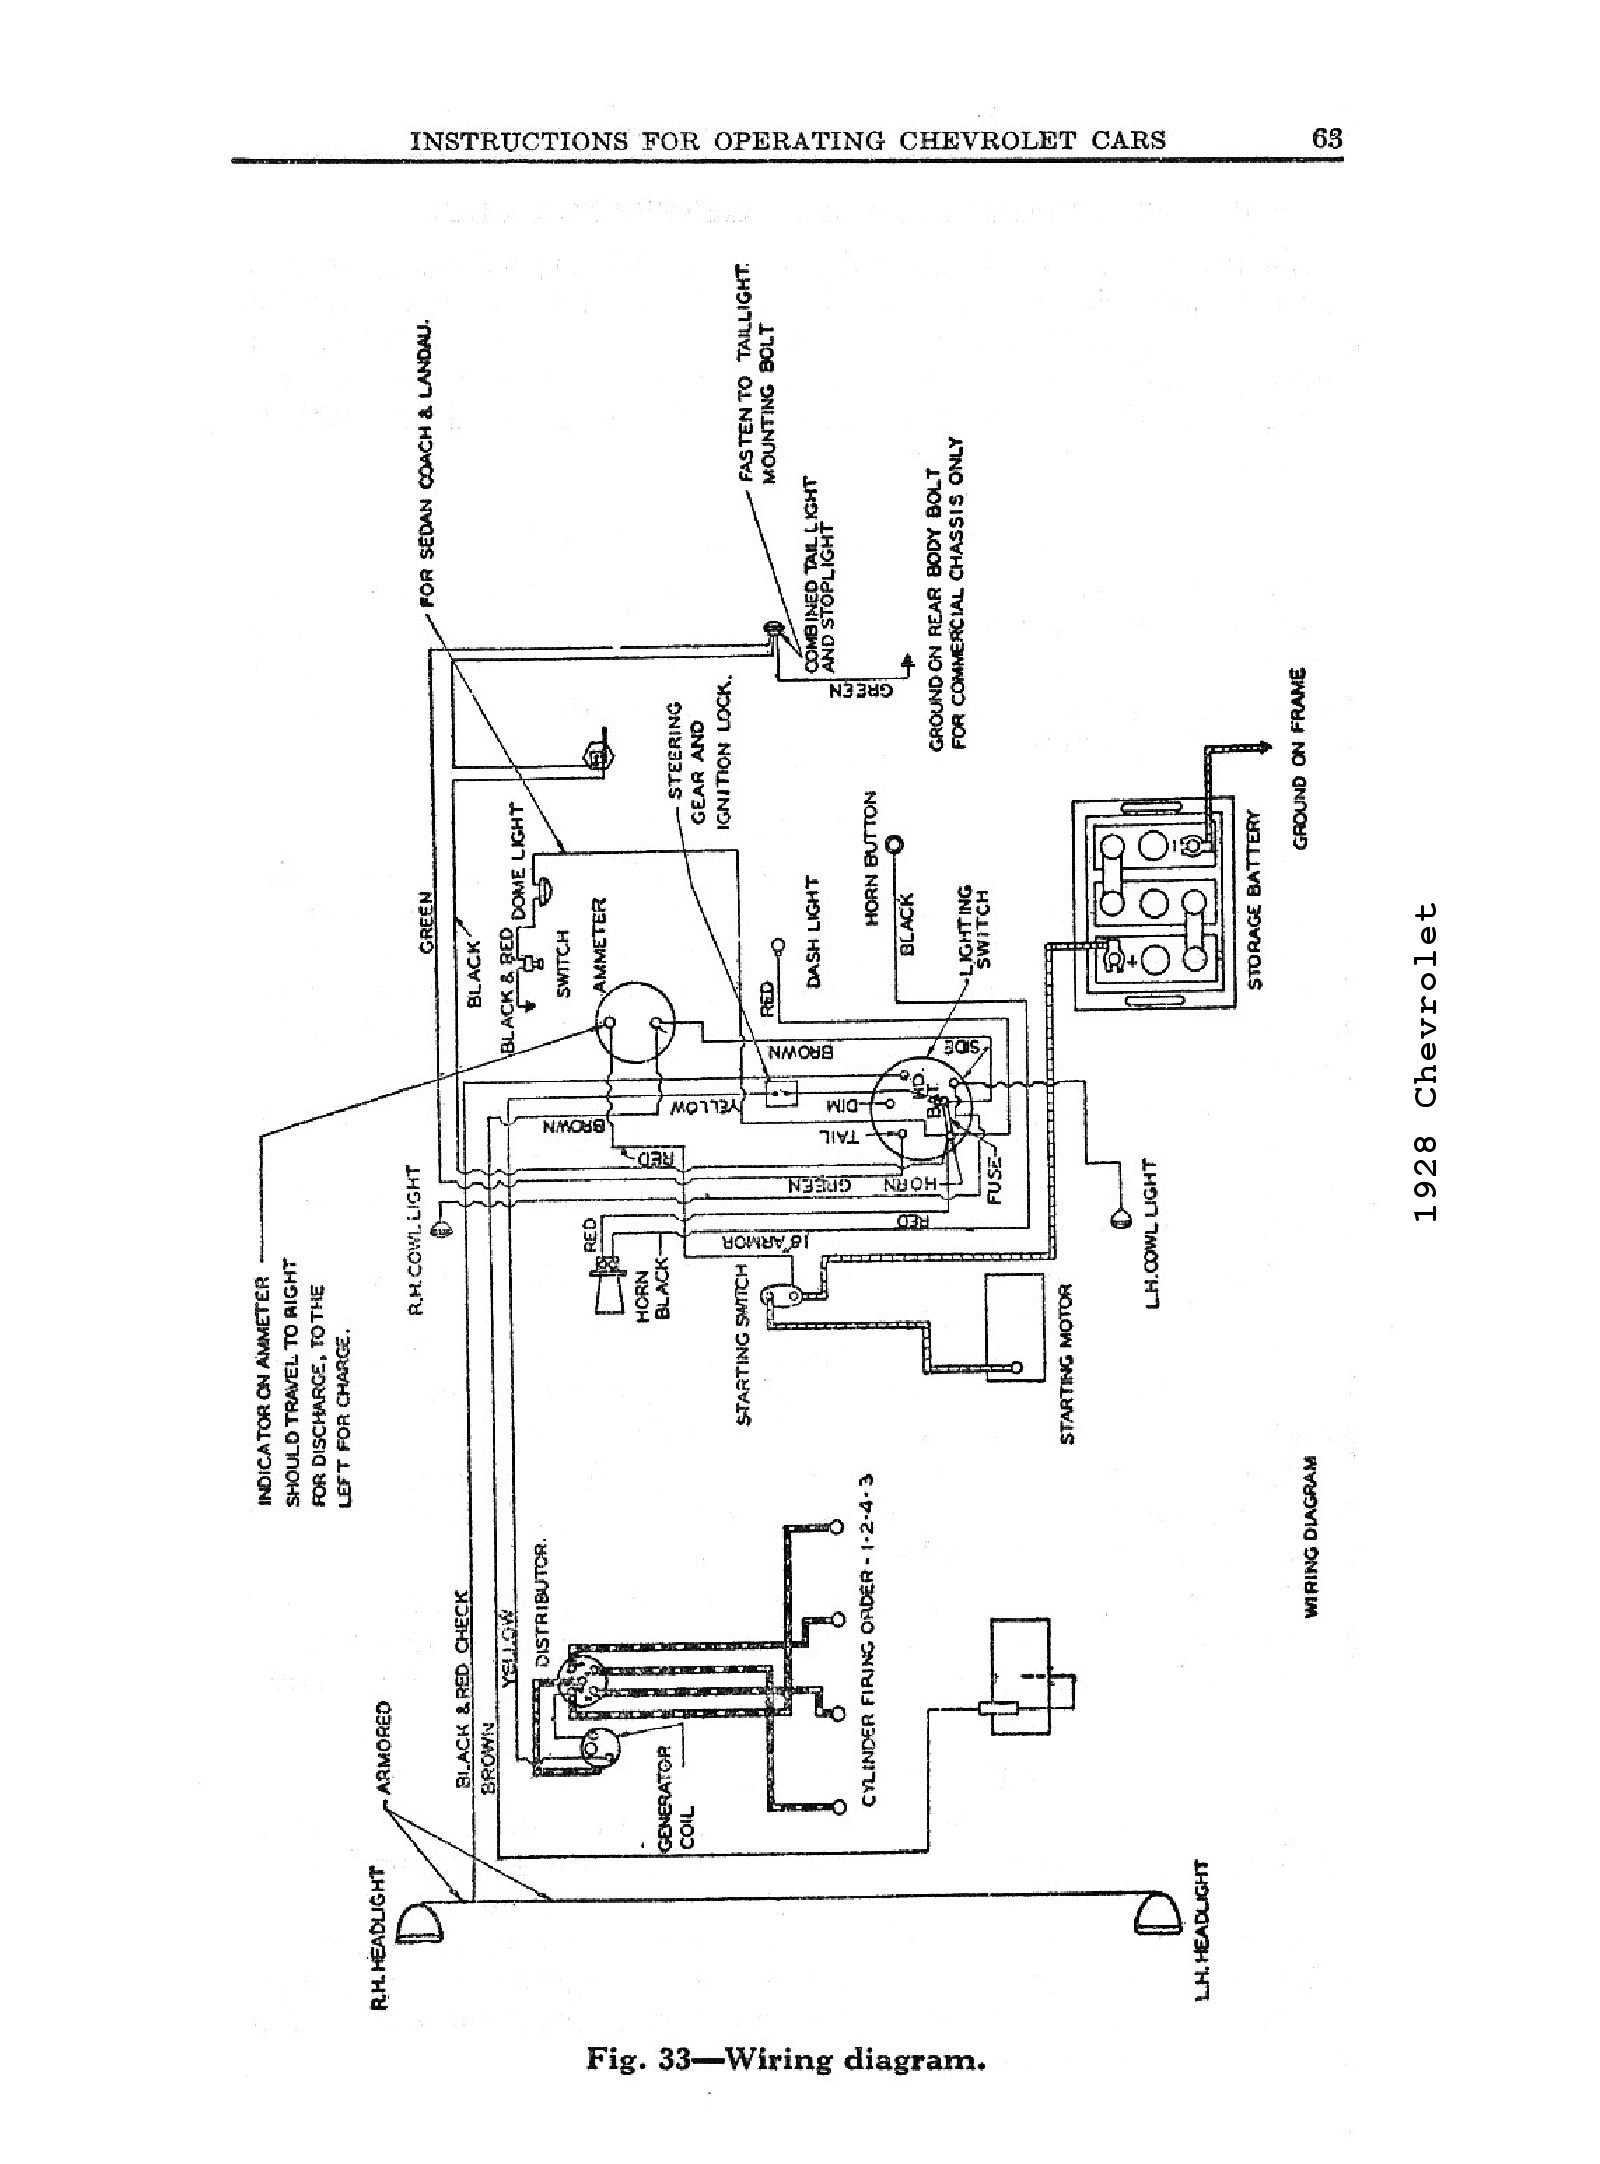 63 chevy truck wiring diagram venn on plant and animal cells chevrolet volt diagrams get free image